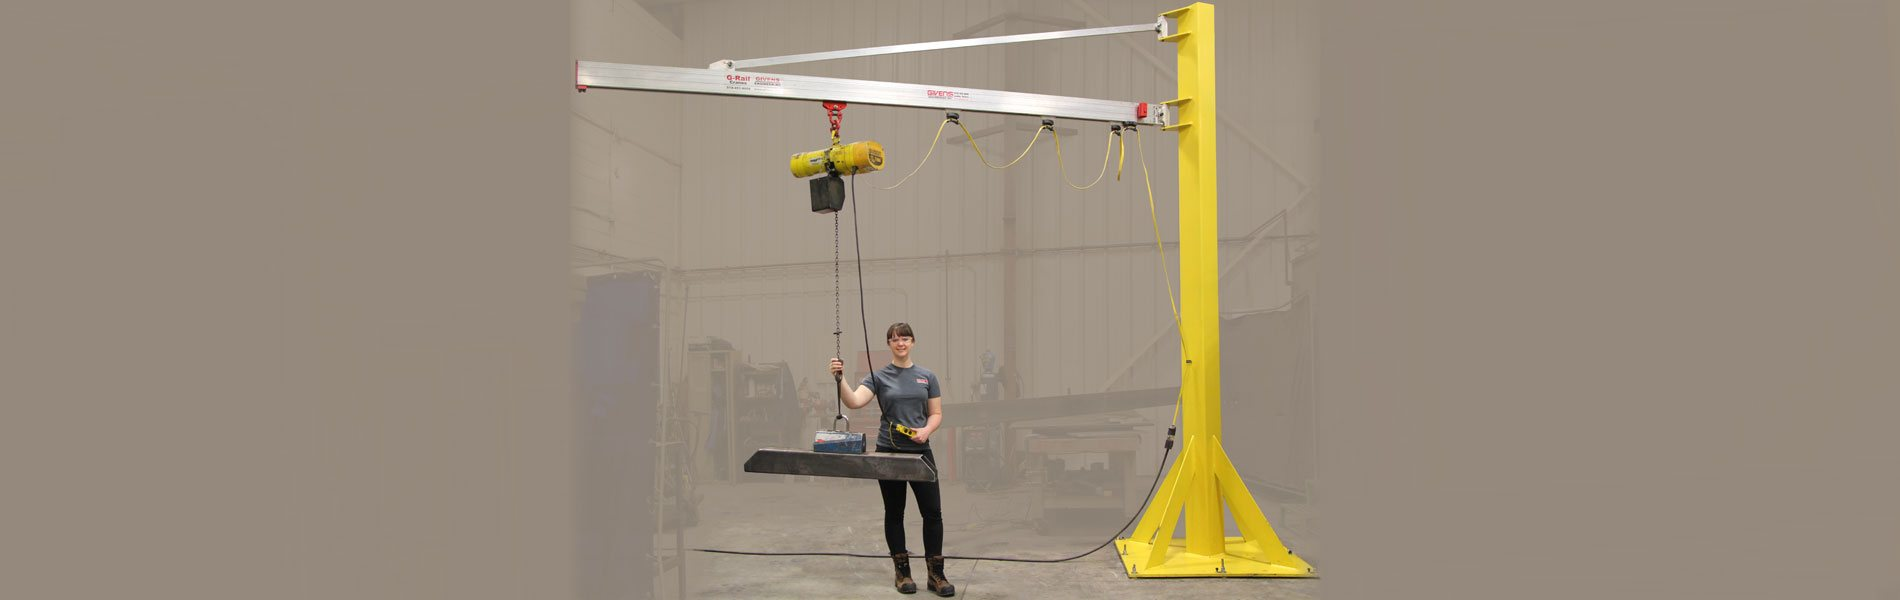 Jib Crane Manufacturers Usa : Givens engineering inc industrial material handling